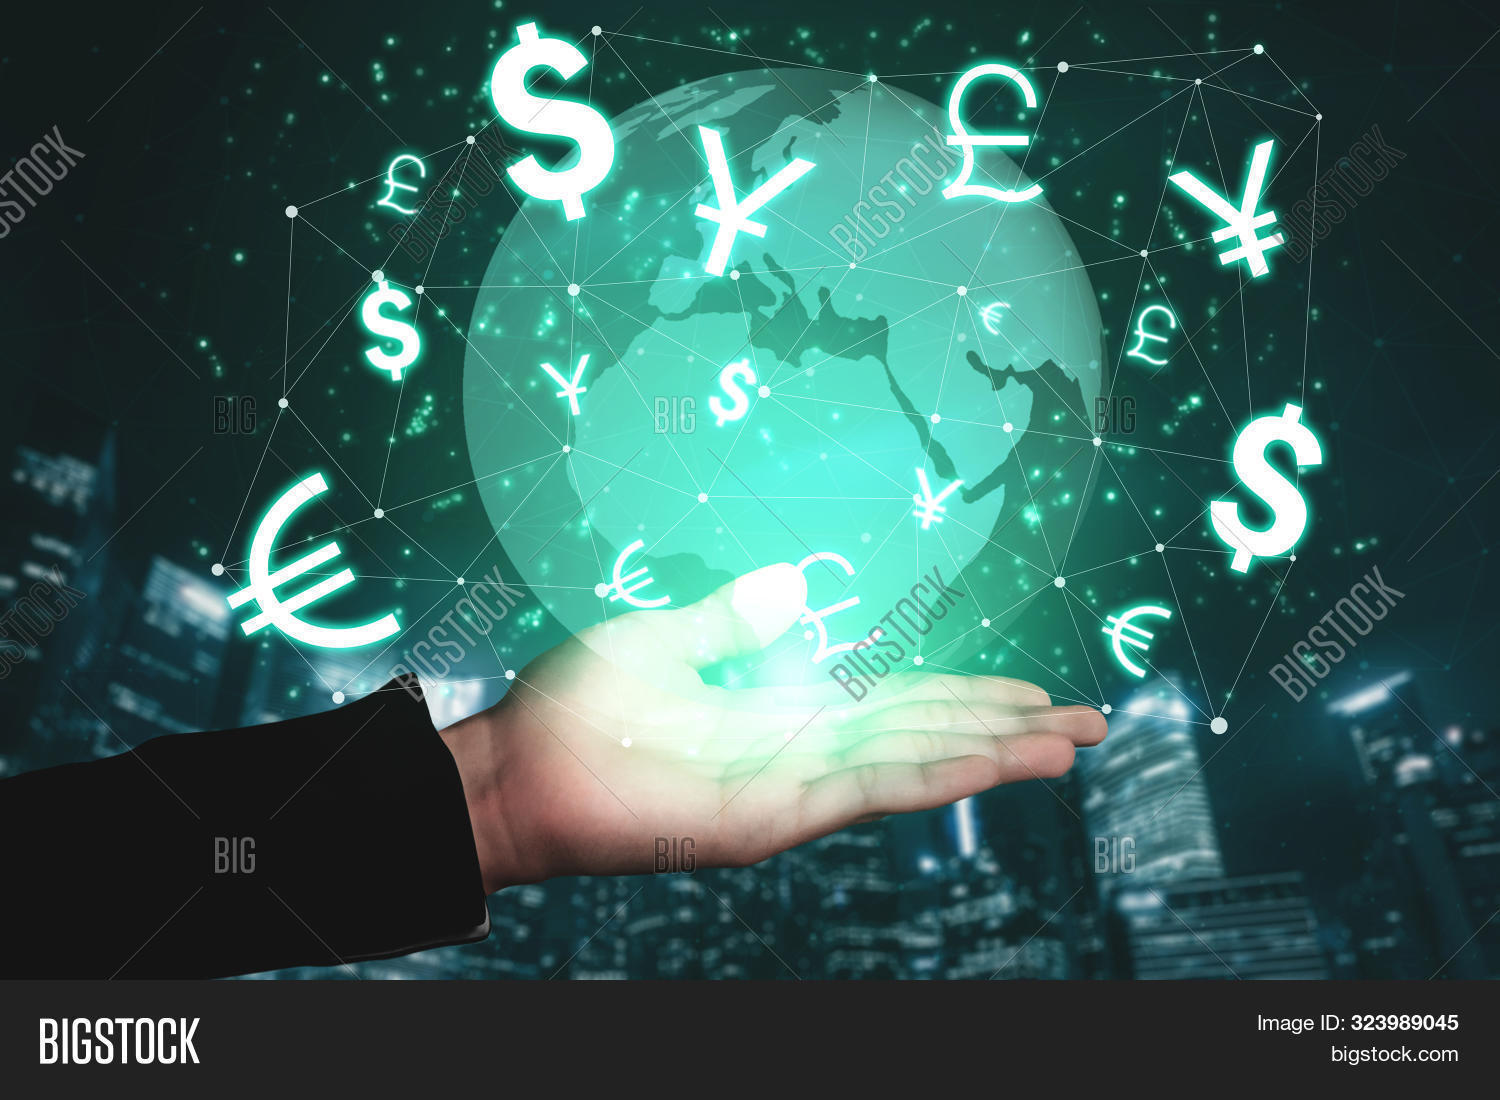 Currency Exchange Image Photo Free